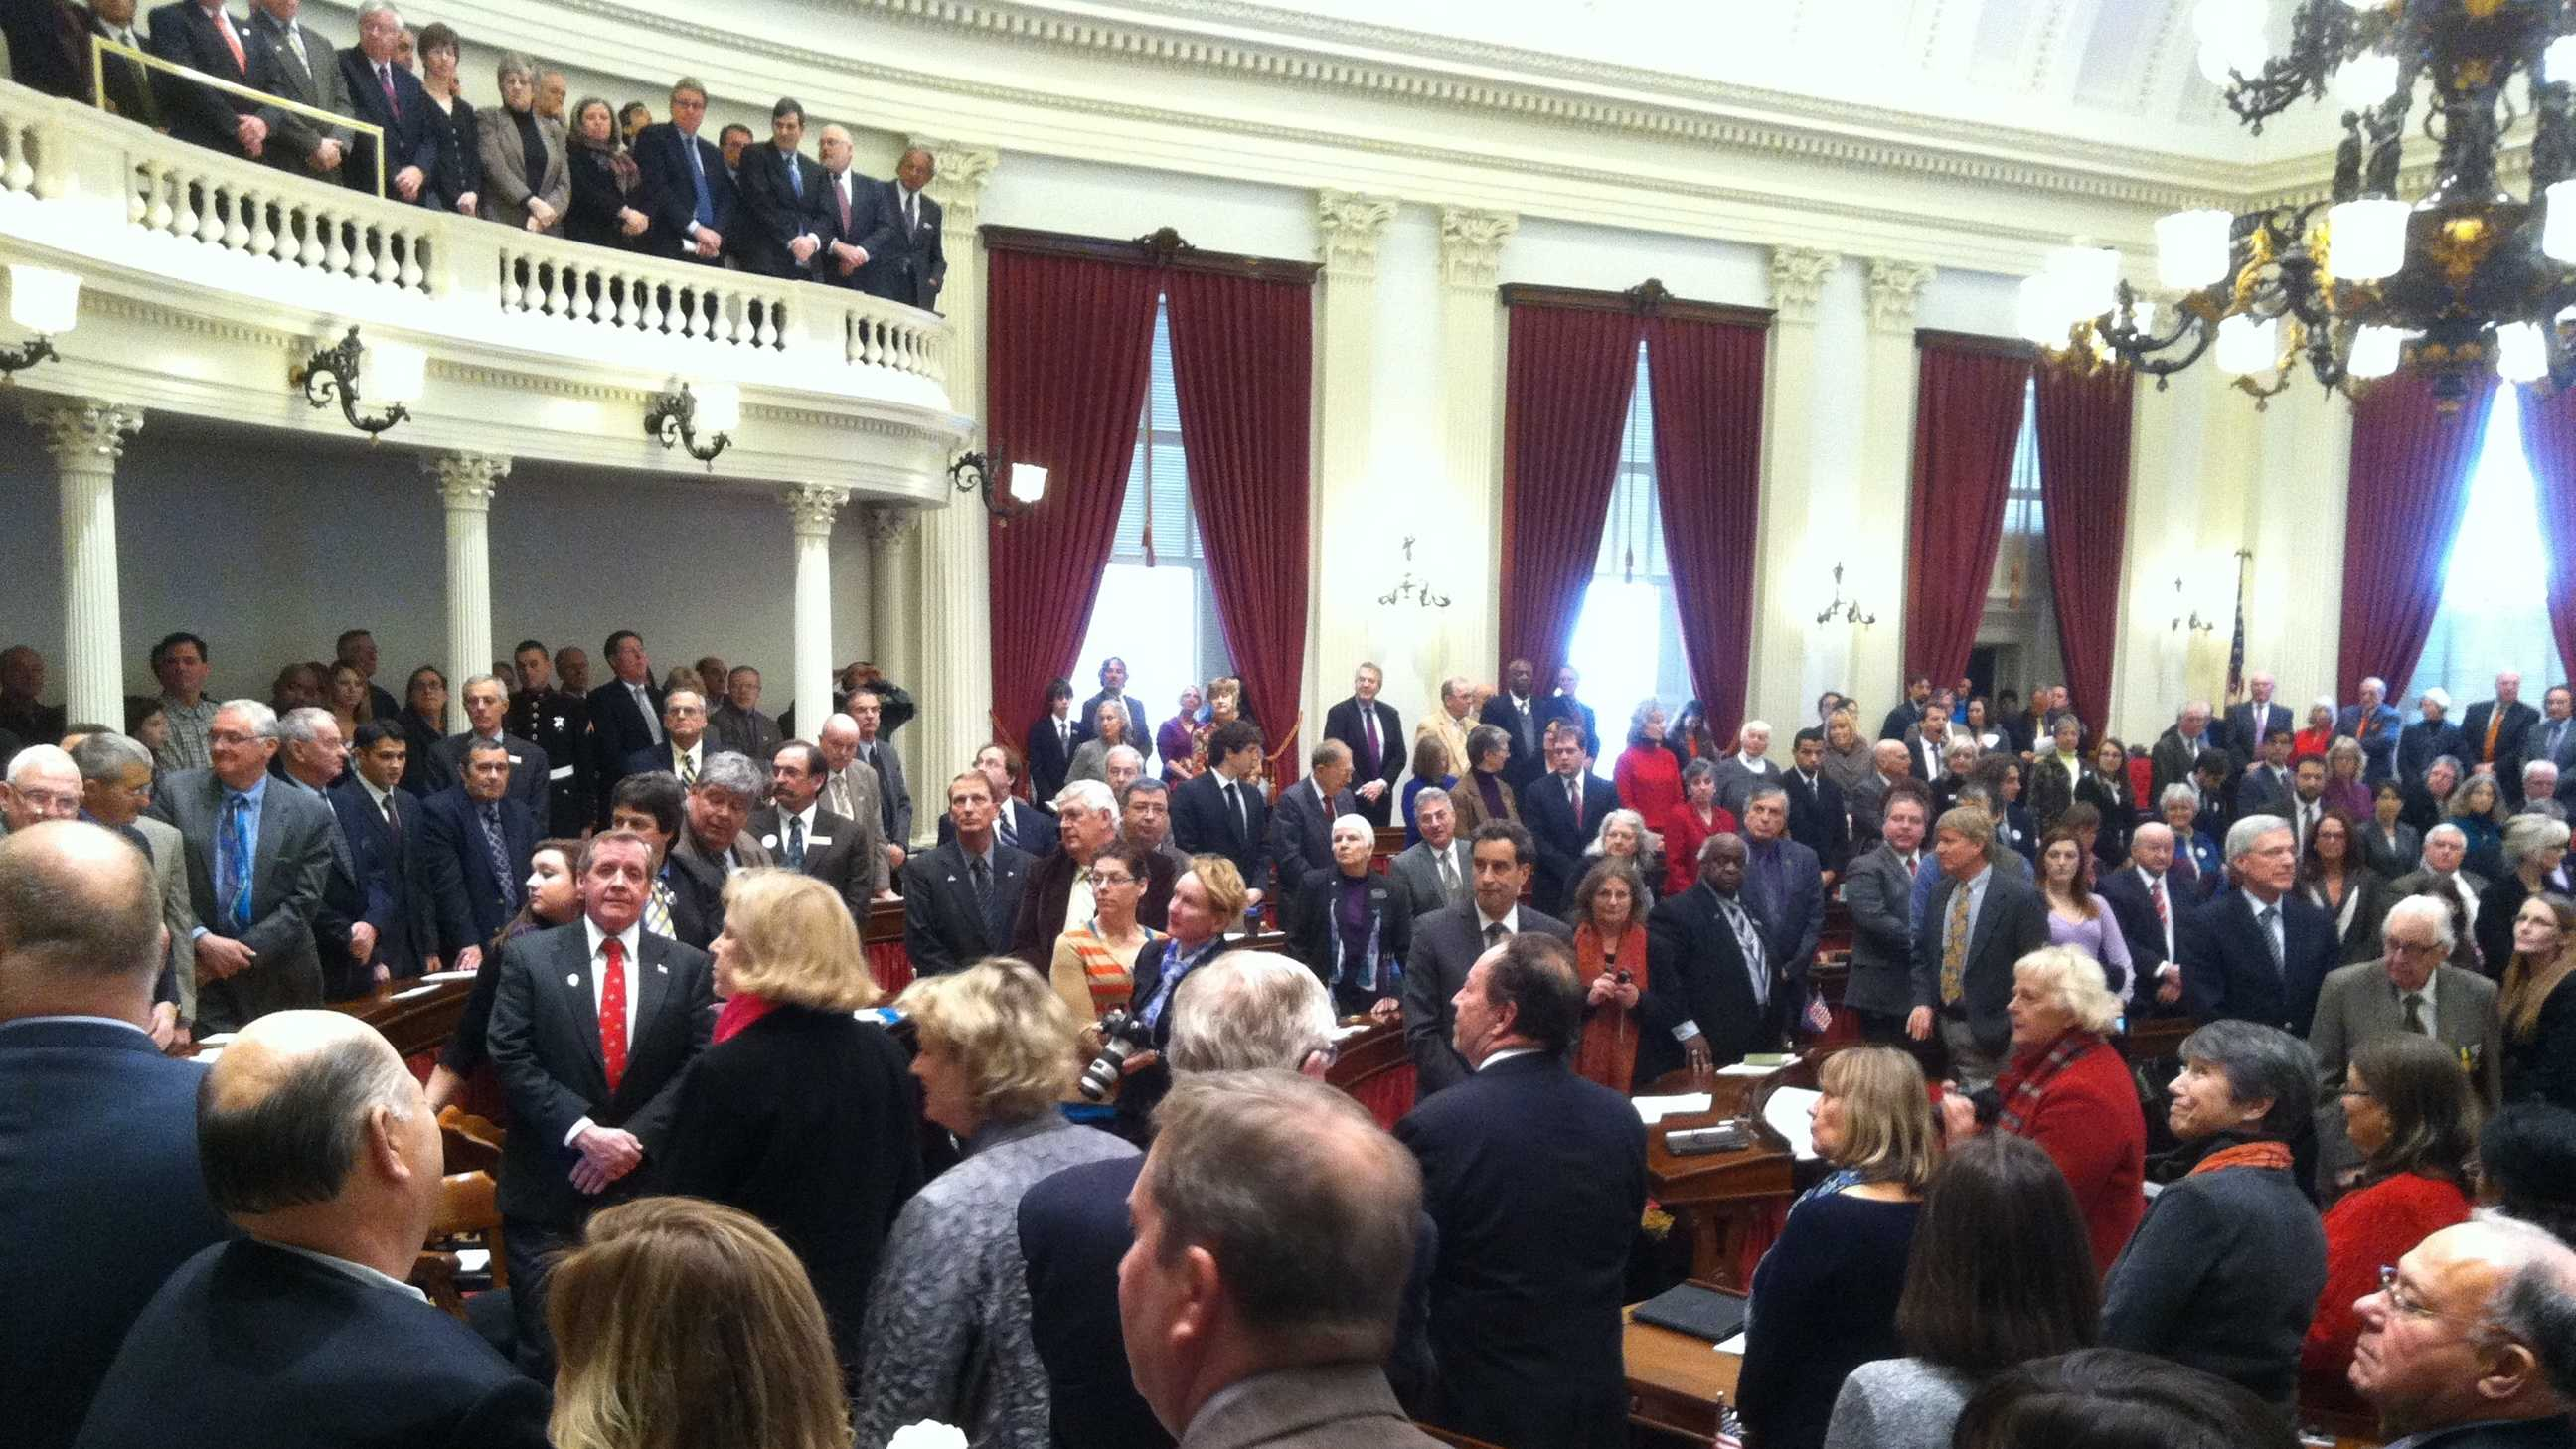 Vermont lawmakers and hundreds of guests pack the House chamber awaiting the start of the inauguration ceremony Thursday afternoon.